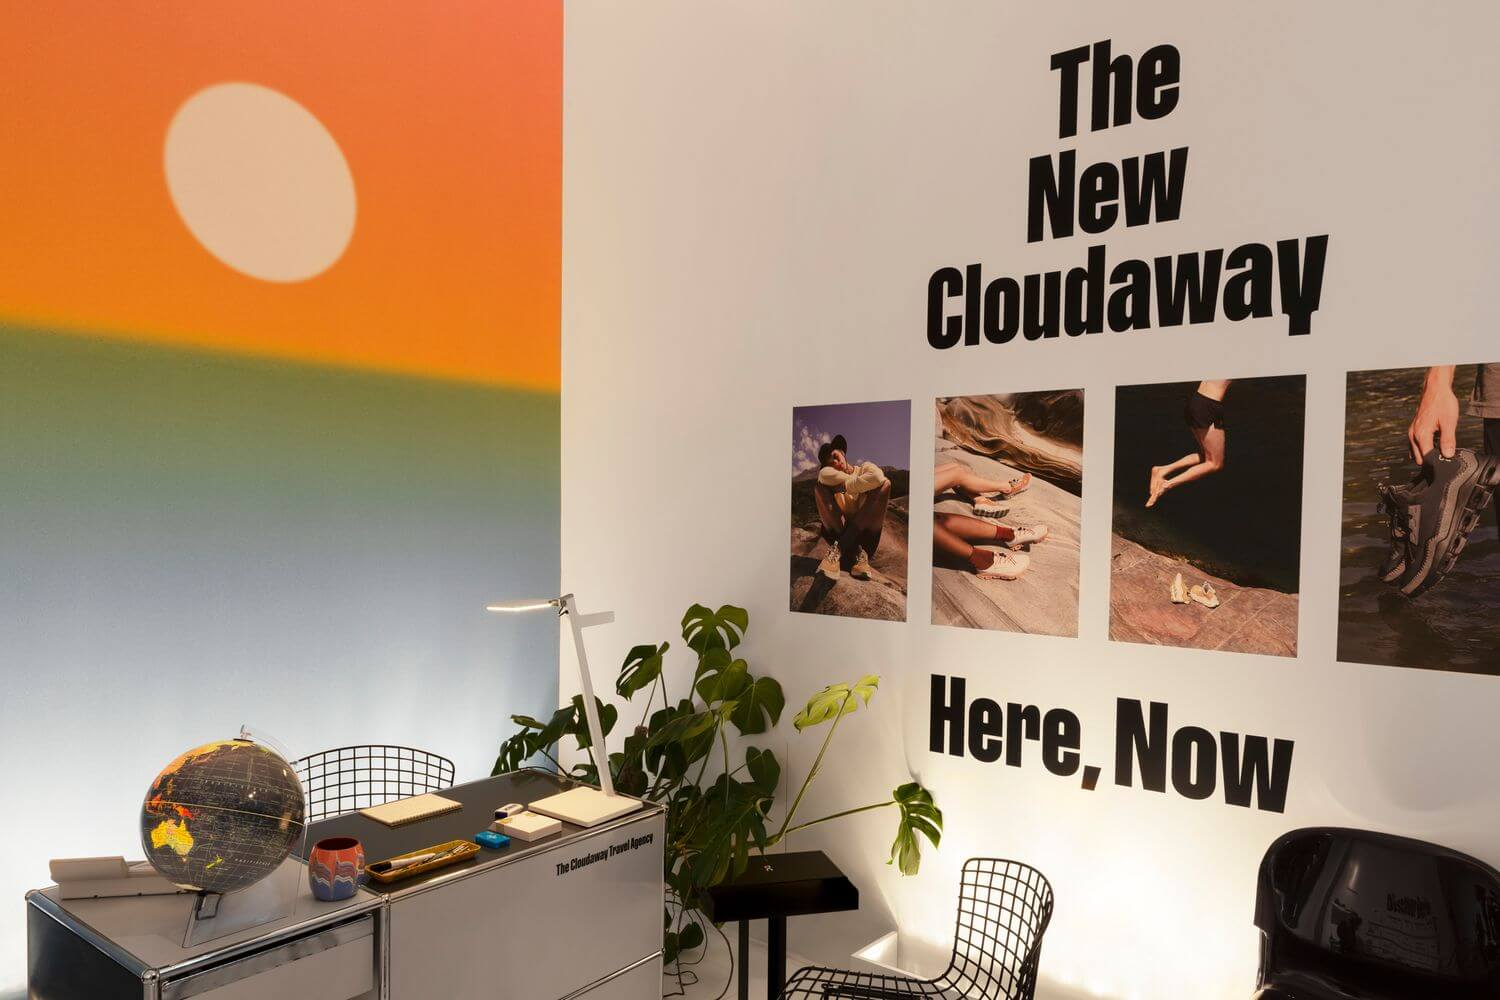 On's The Cloudaway Travel Agency